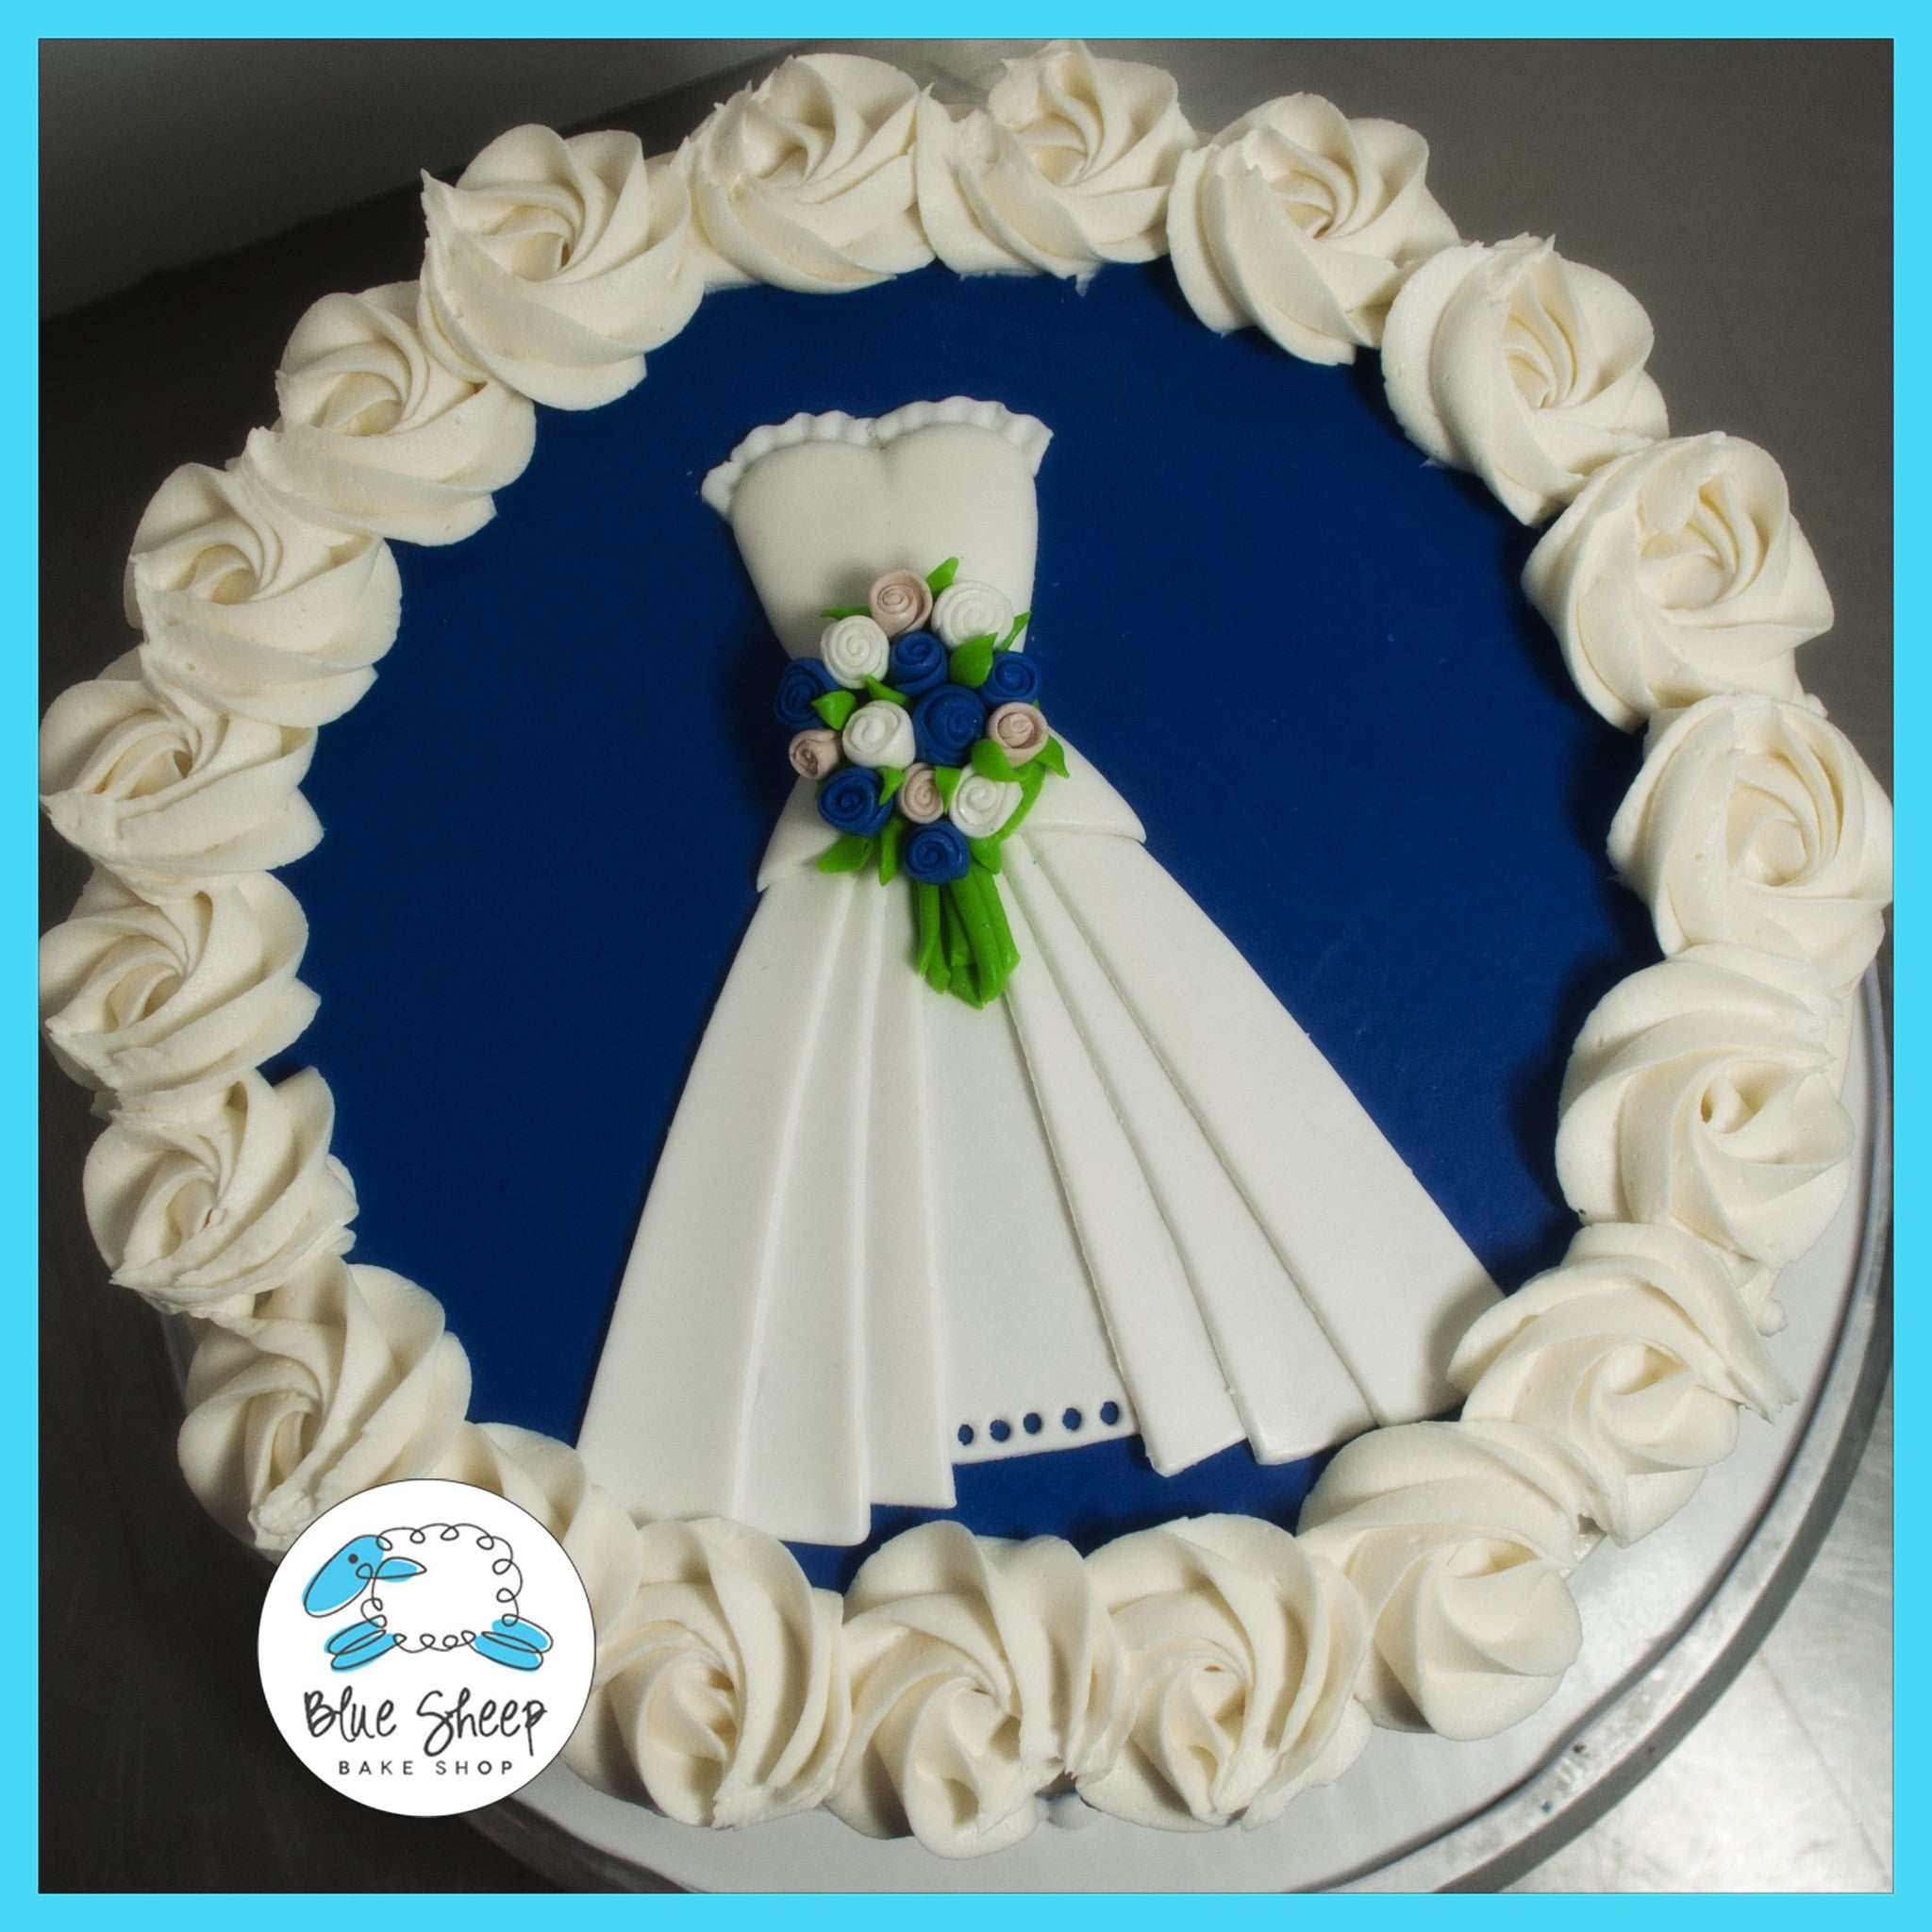 fondant wedding dress cake topper nj